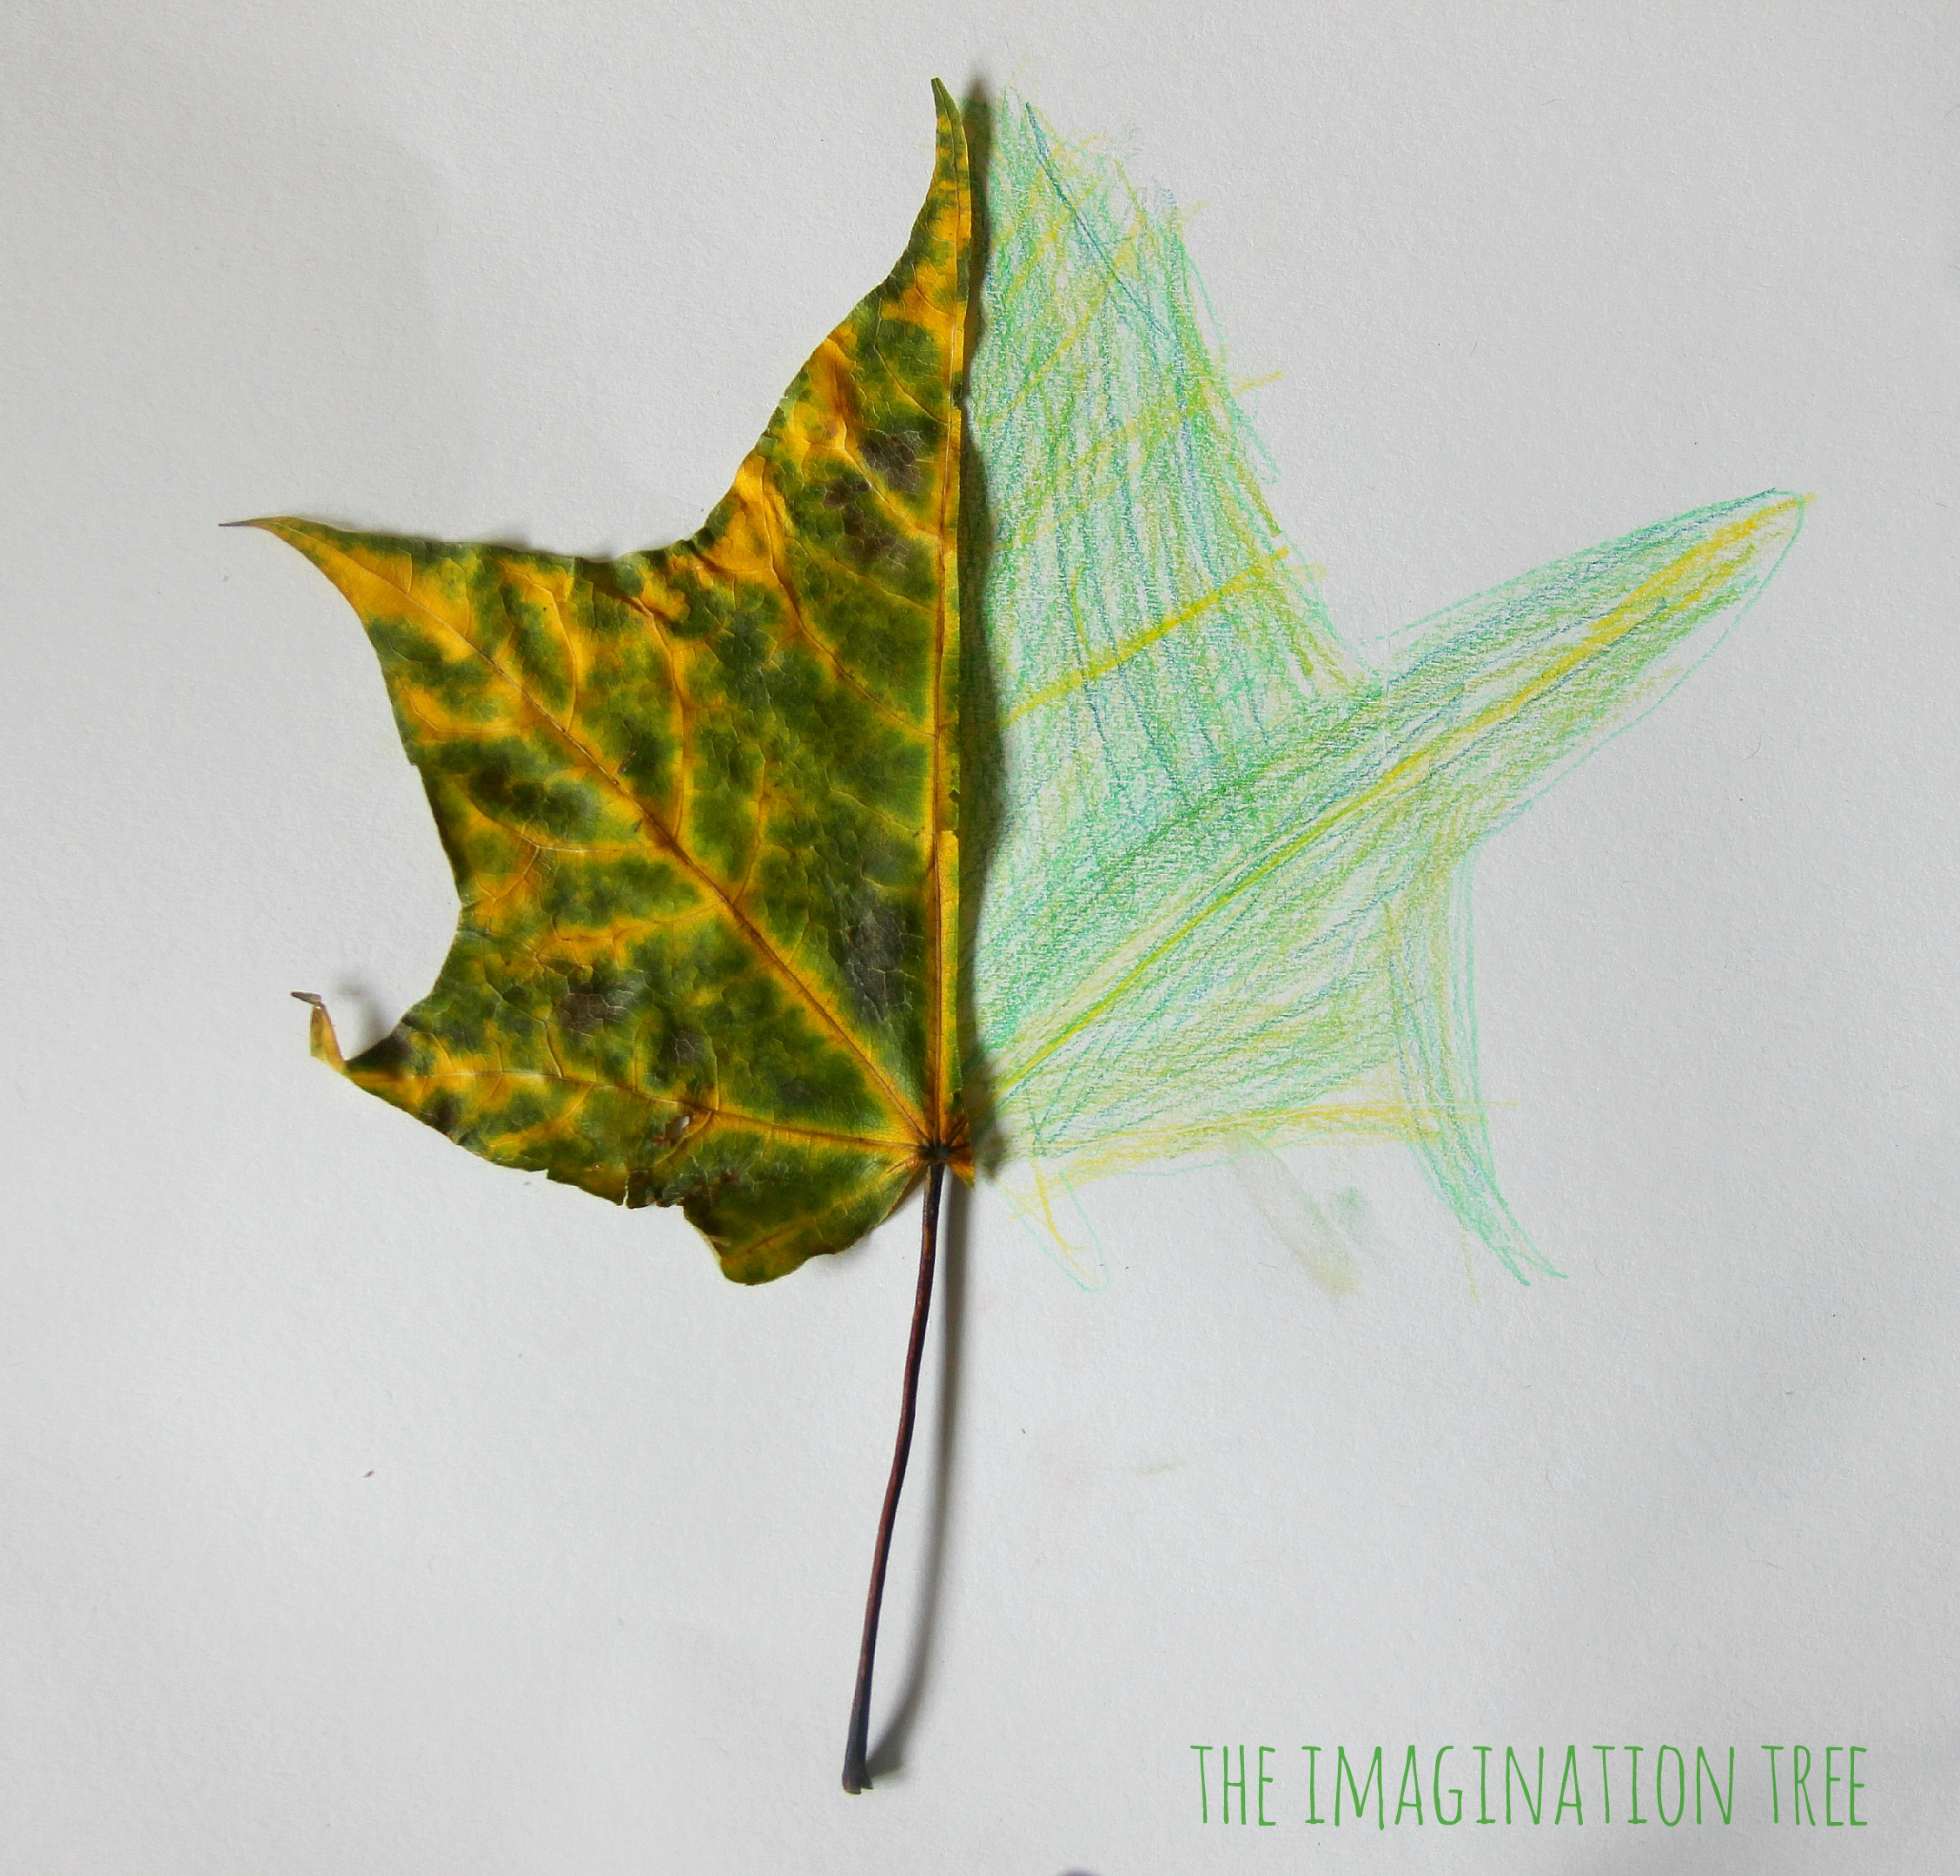 Drawing half leaf mirror pictures a nature art activity for kids